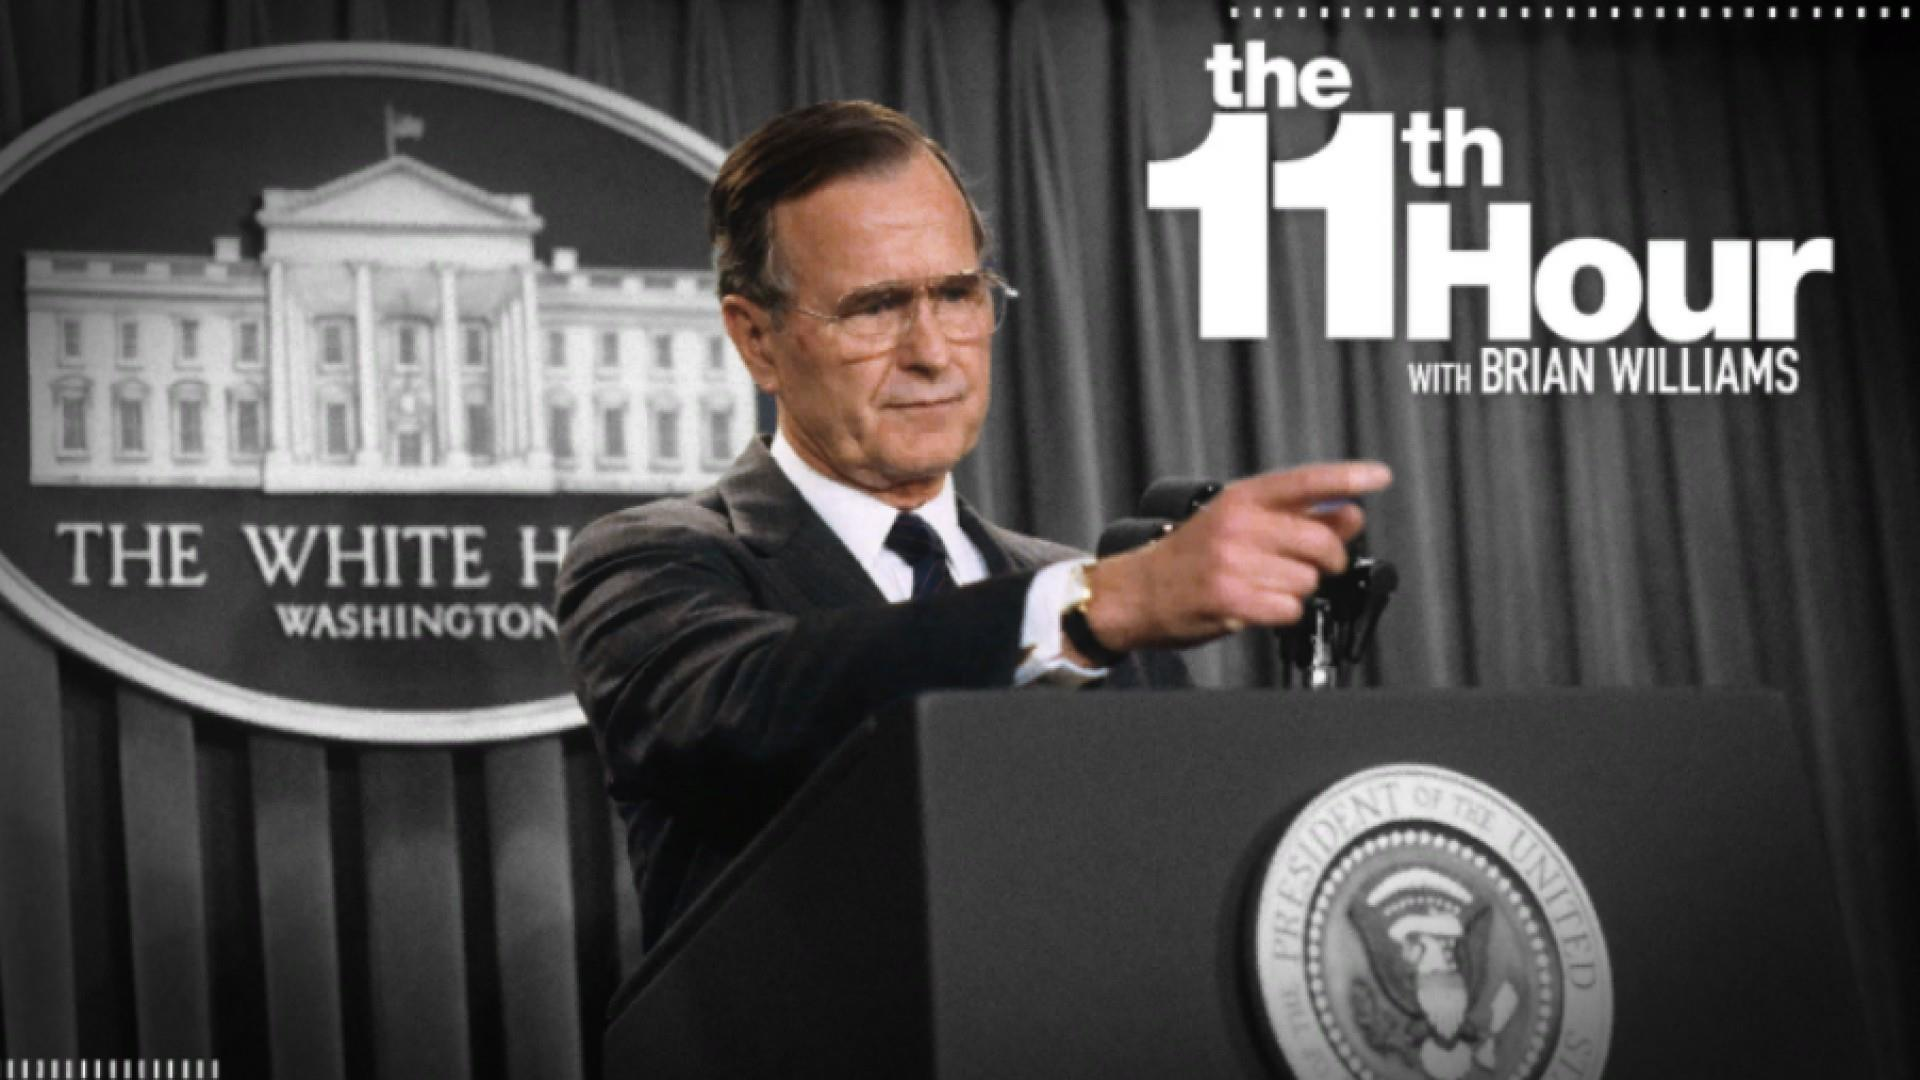 Bush 41's indelible mark on American presidential history